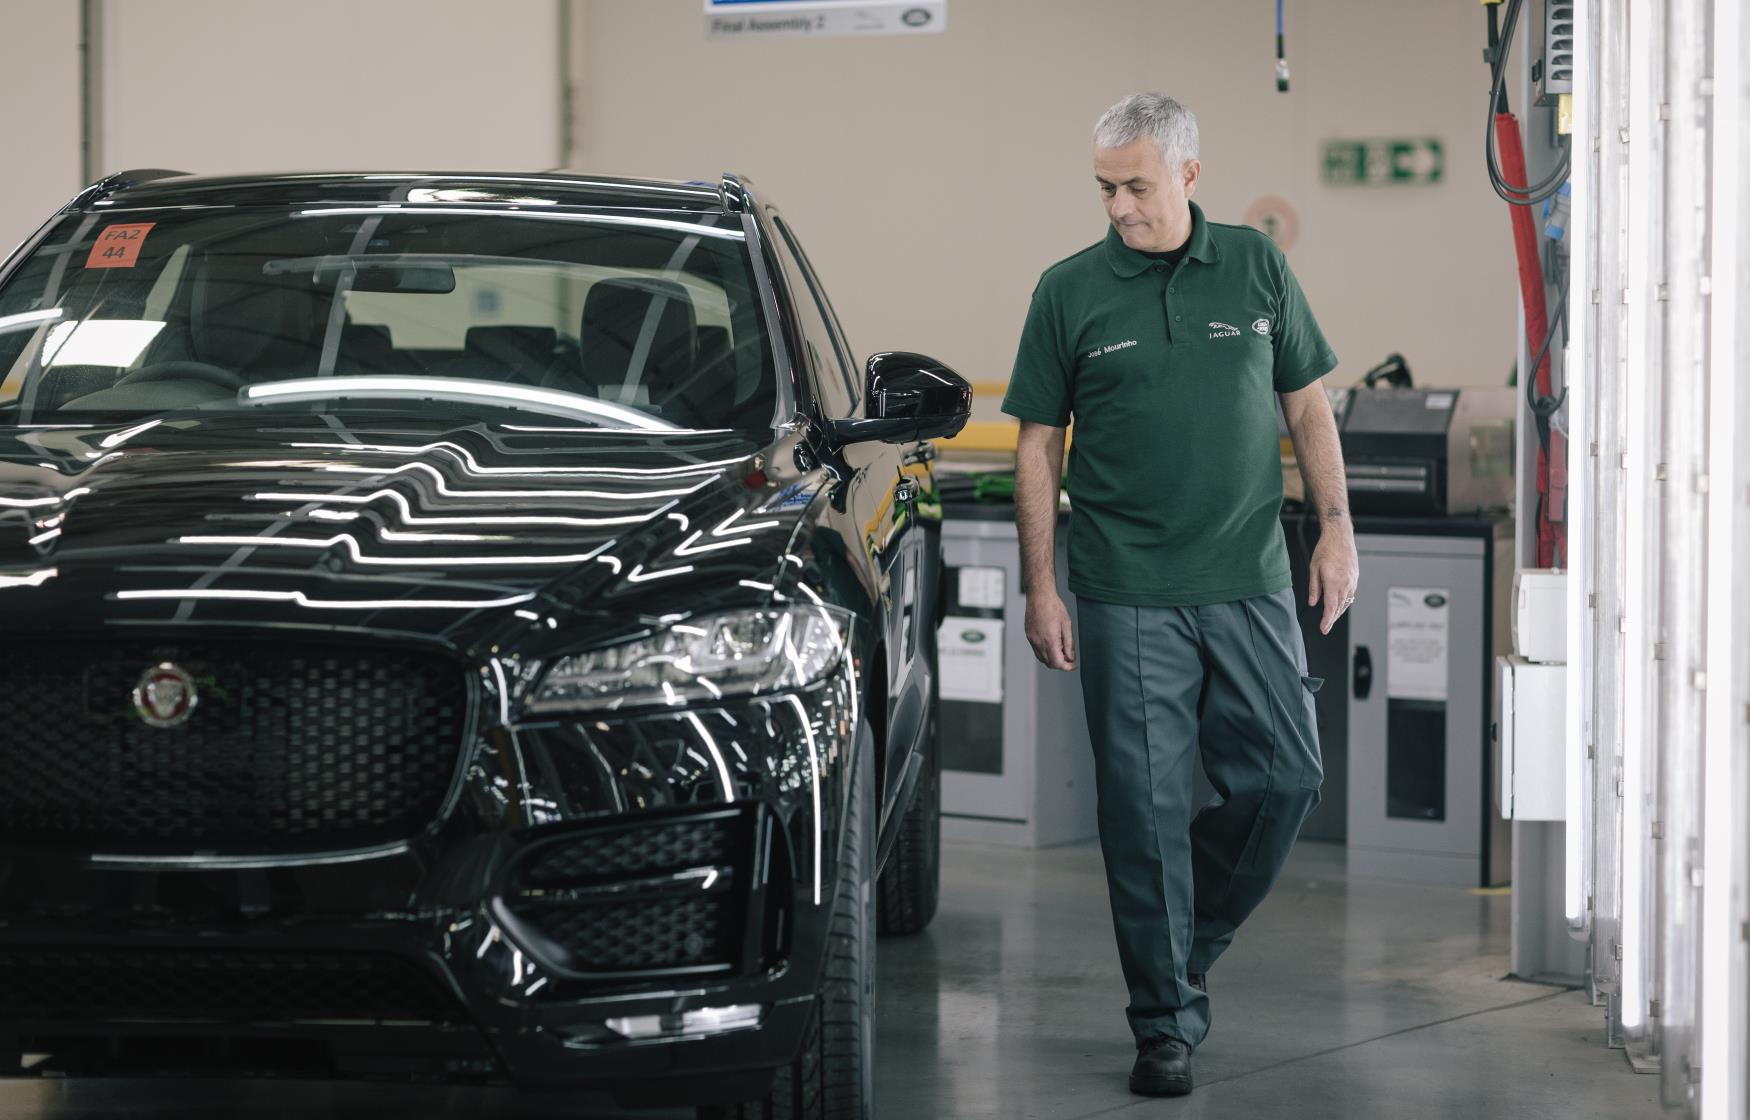 Mourinho dons overalls to build his new Jaguar F-Type